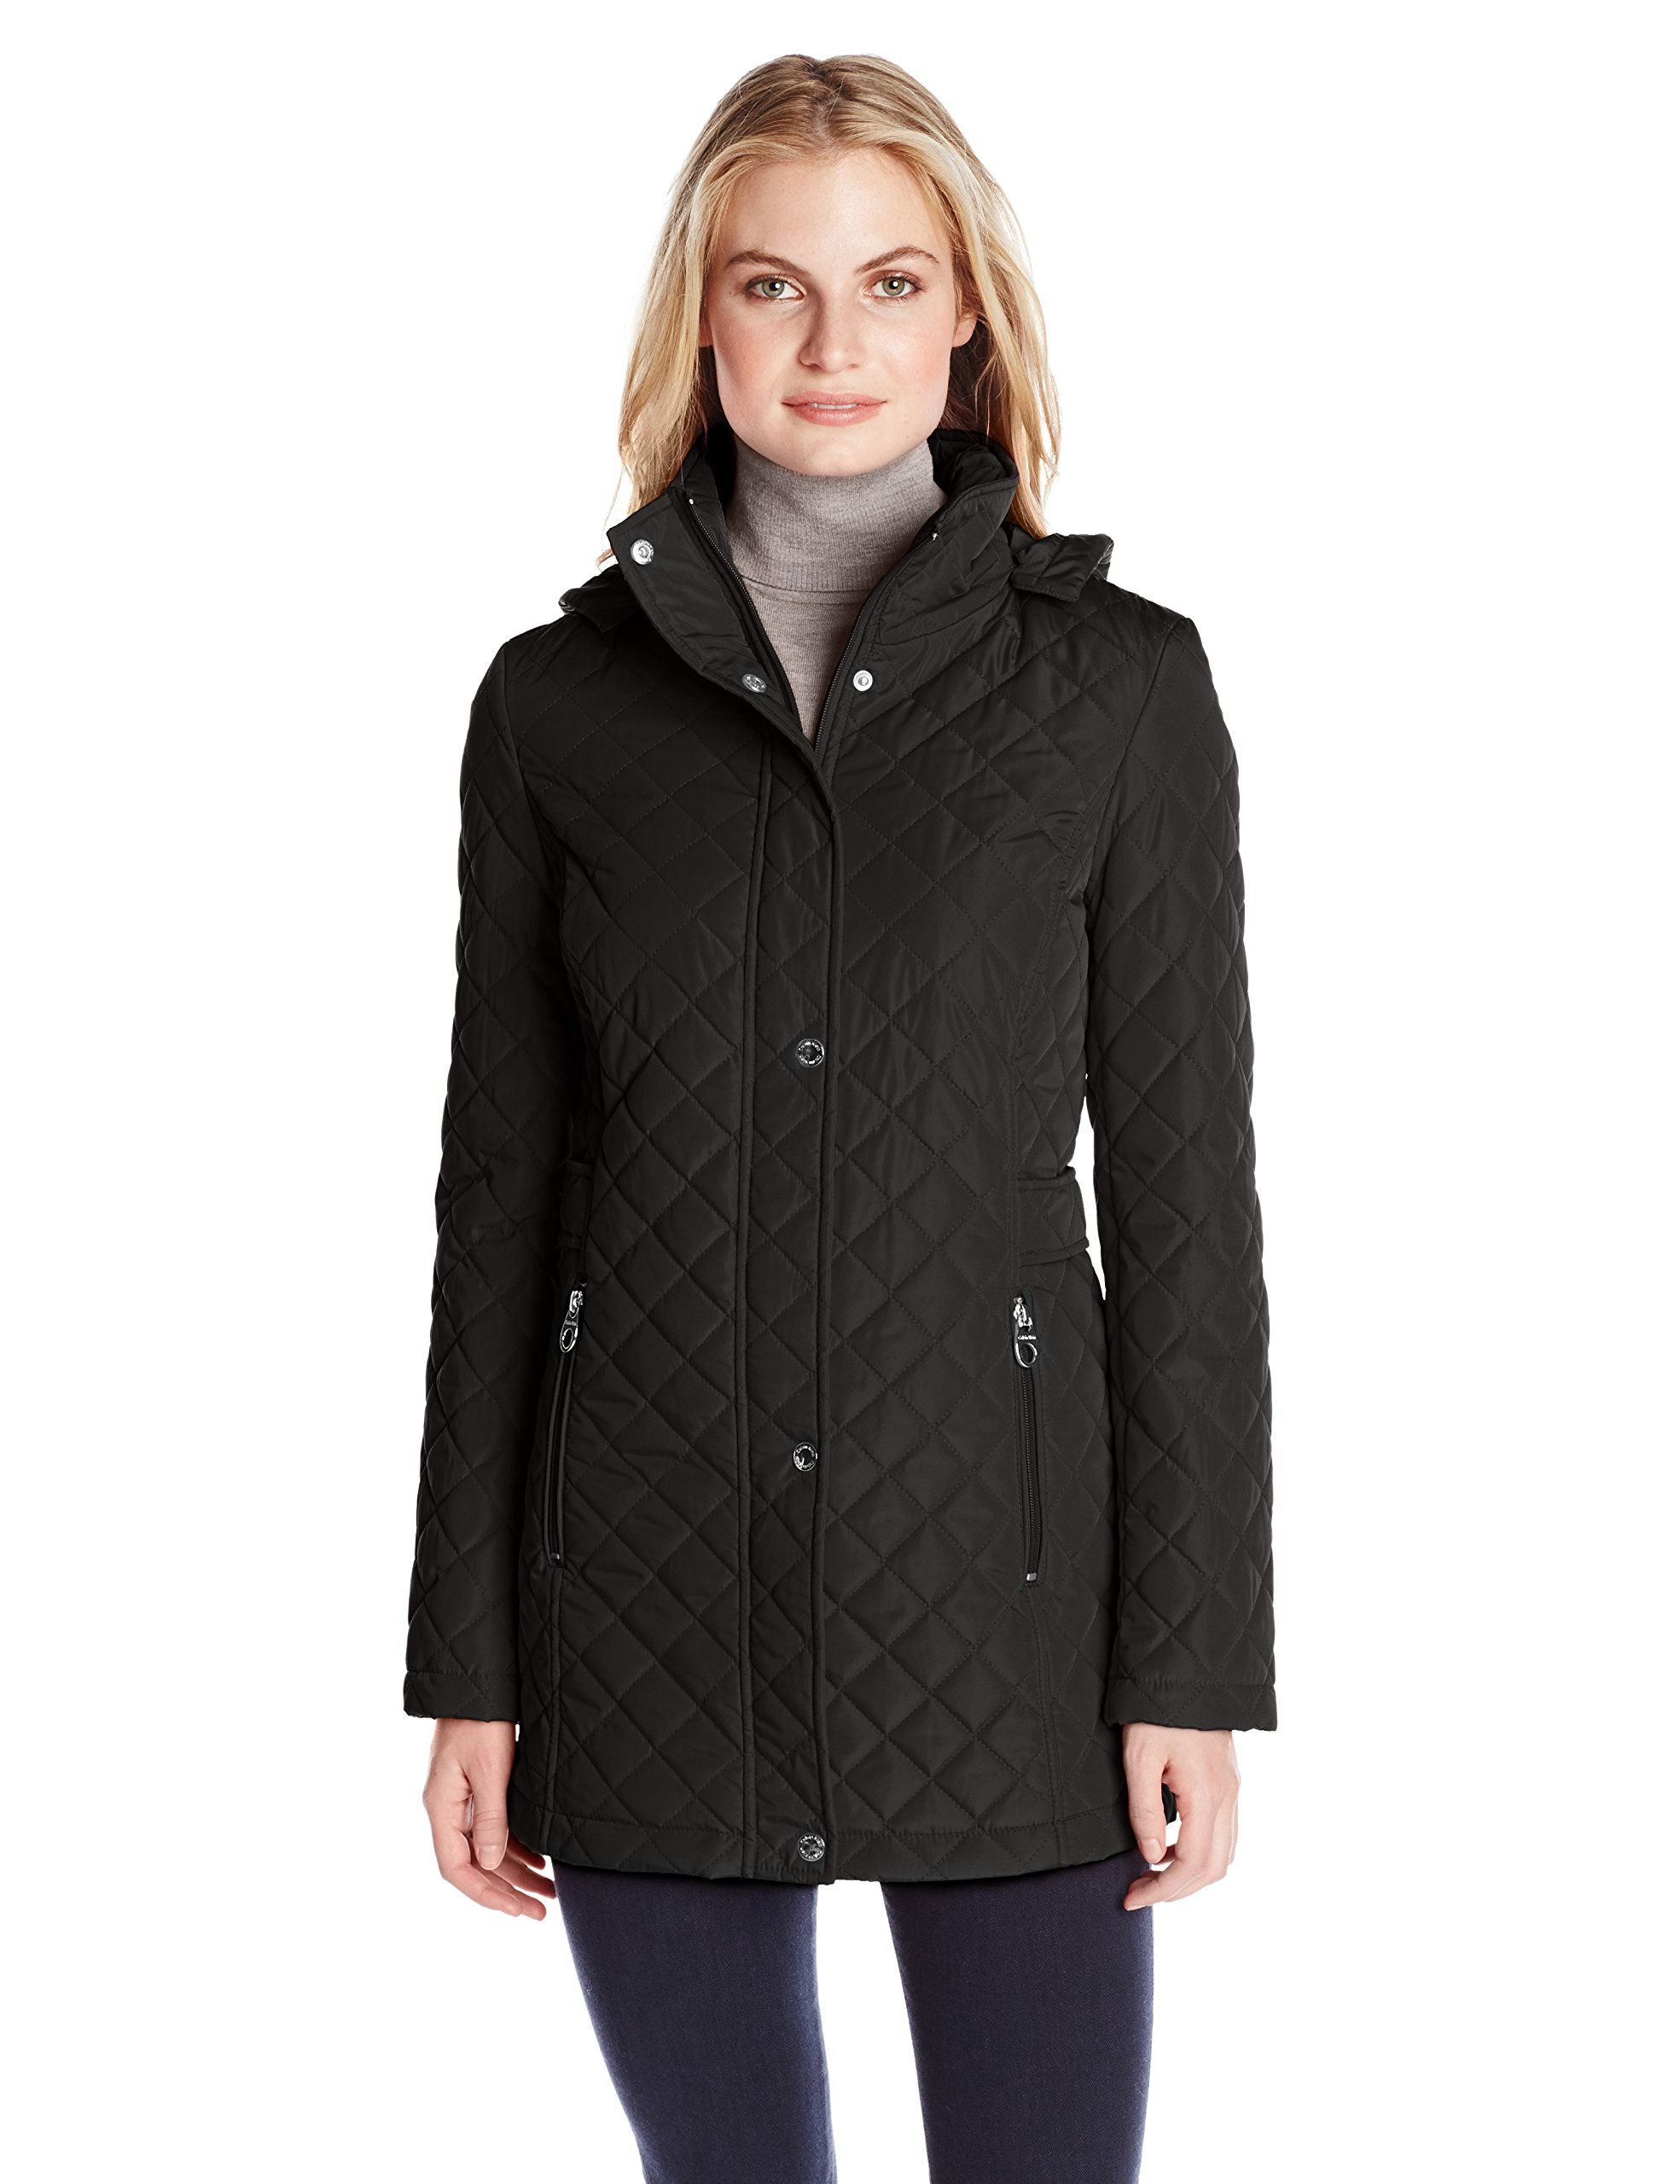 p quilt carbon s size yjqrcwn coats free people sku guide women jacket coat c quilted dolman